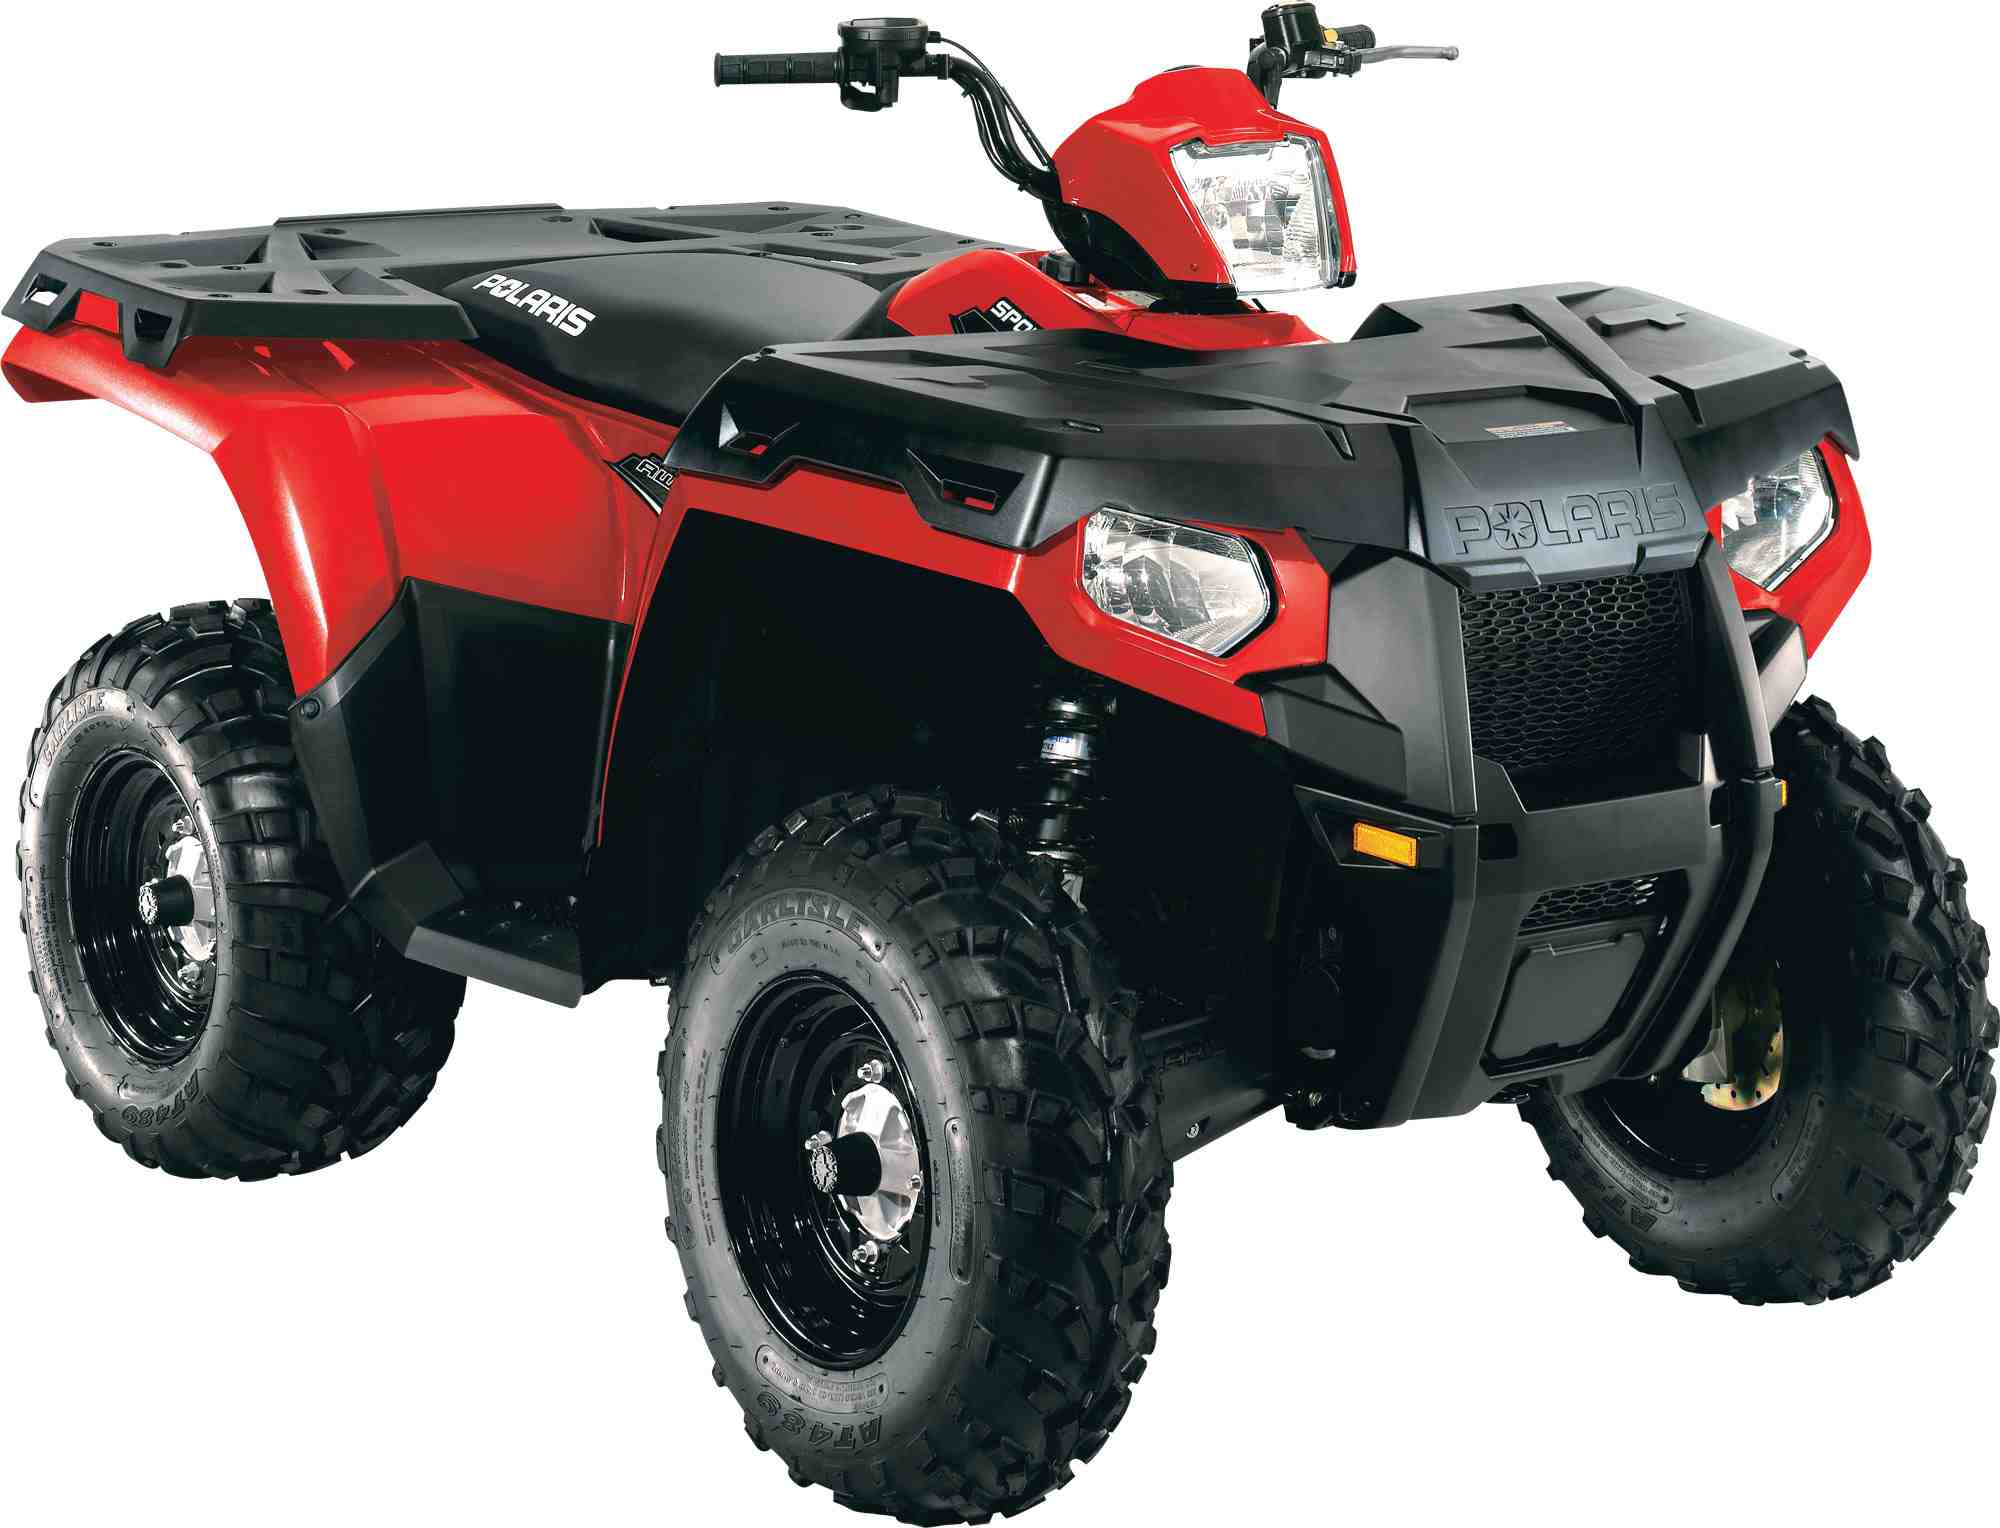 polaris sportsman 400 sportsman 500 xplorer 500 4x4 atv workshop service repair manual 1996. Black Bedroom Furniture Sets. Home Design Ideas